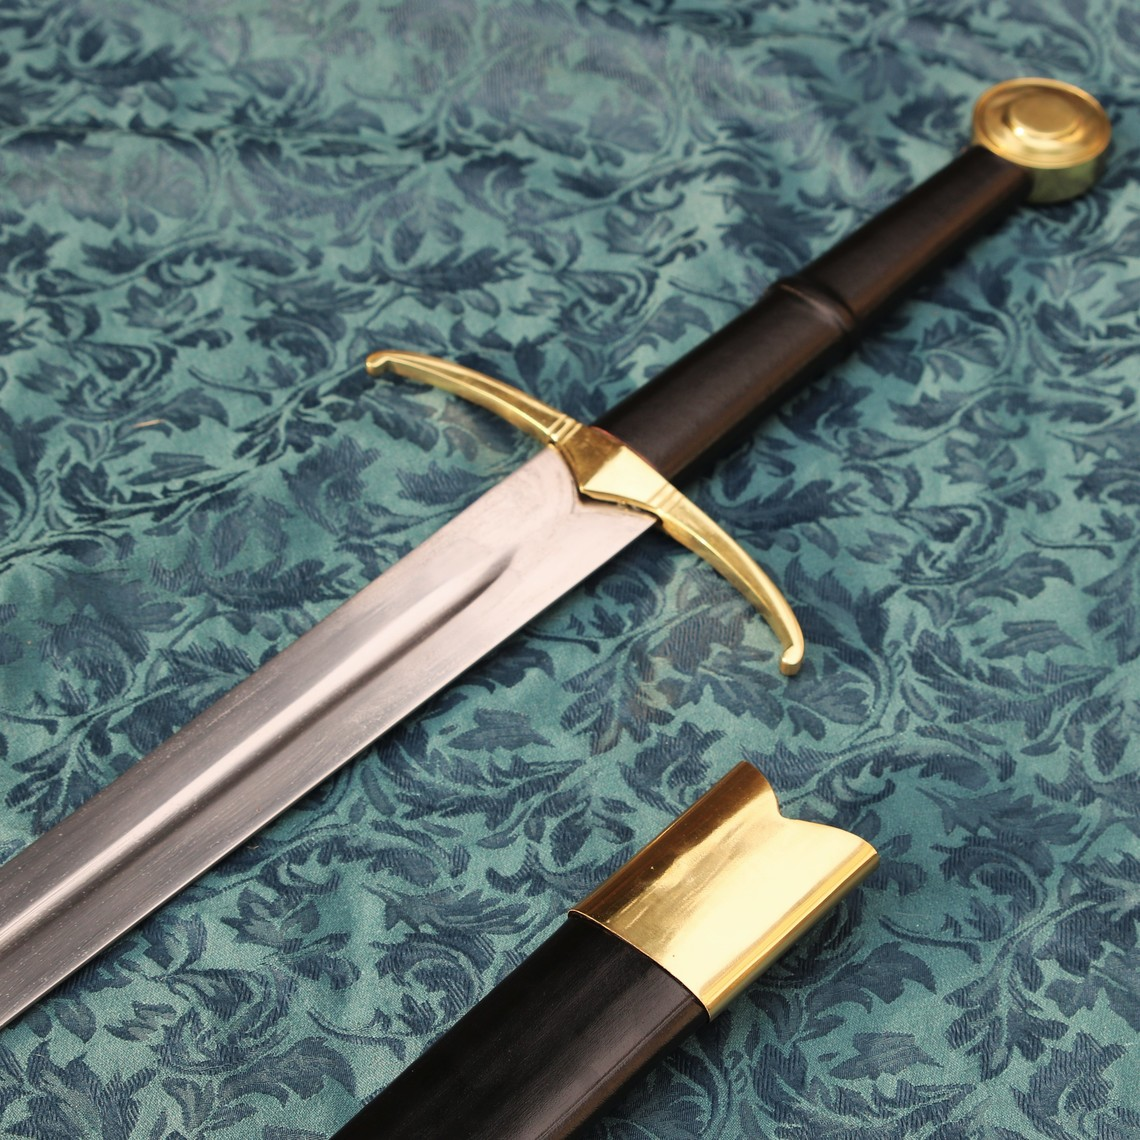 Windlass Steelcrafts Two-handed sword battle-ready tempered with scabbard